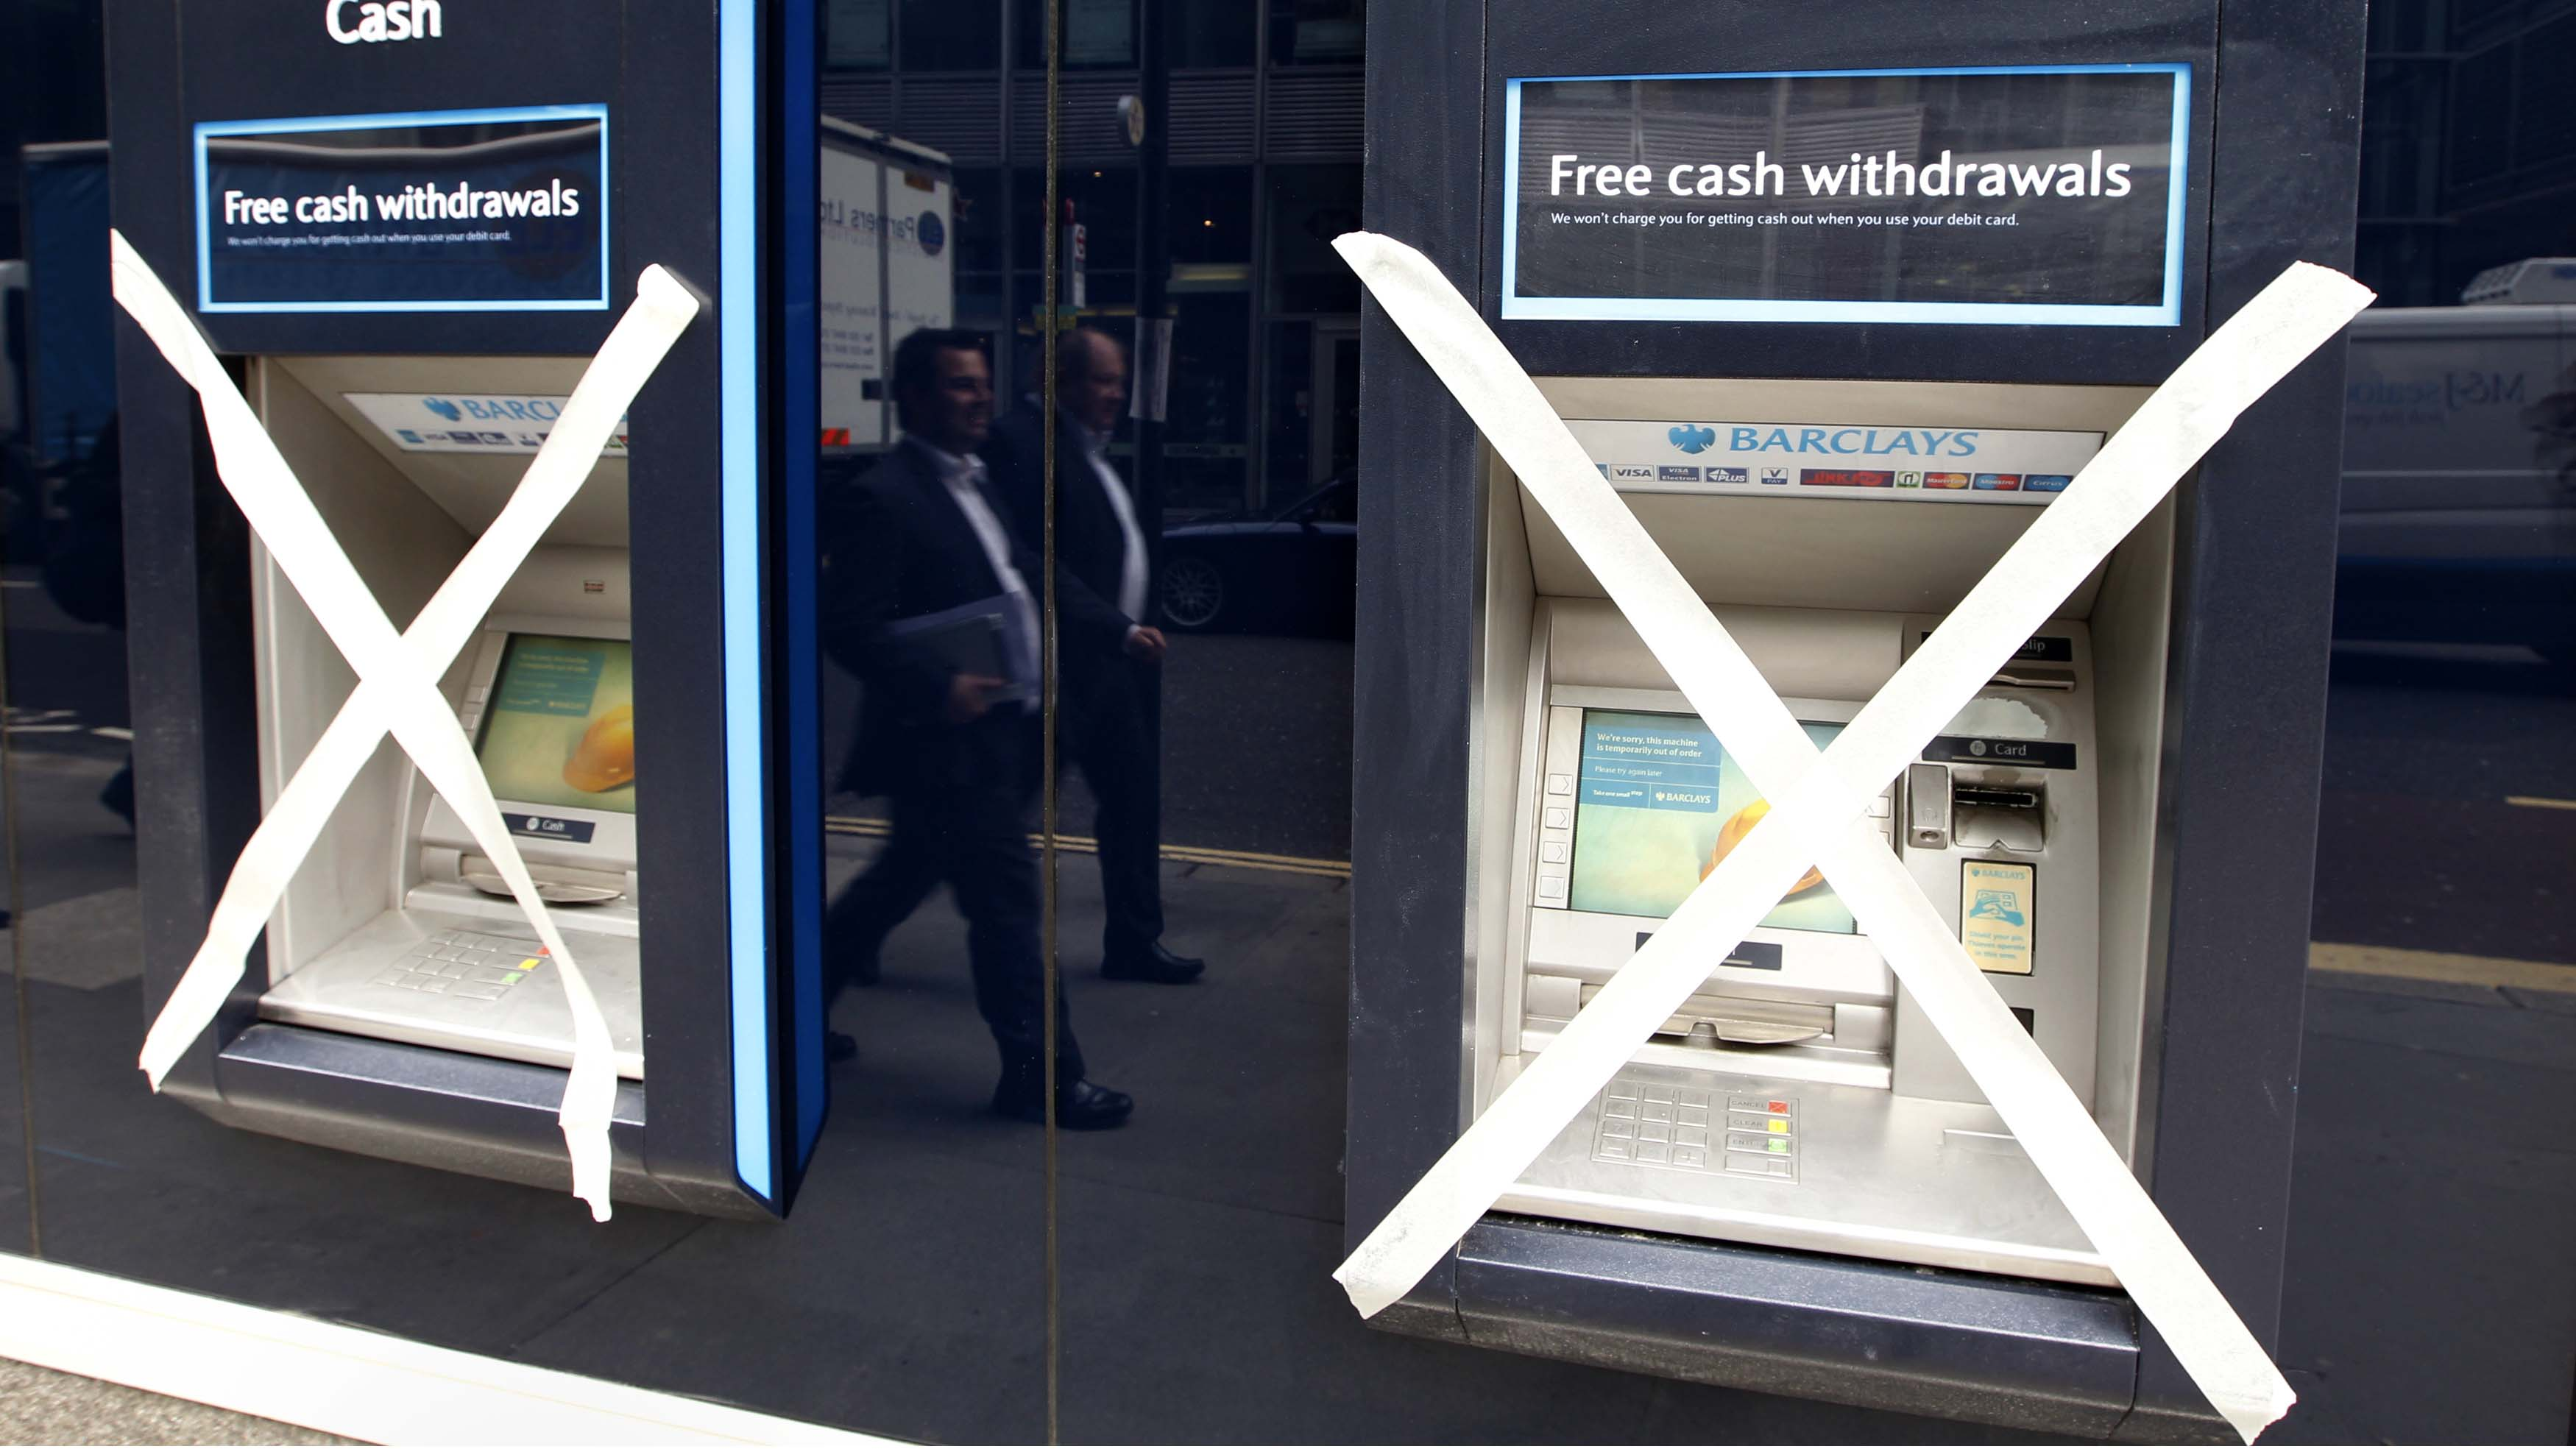 """Two men are reflected as they pass a pair of closed cashpoints marked with masking tape, outside a Barclays Bank branch being refurbished in the financial district City of London August 31, 2011. British Business Secretary Vince Cable accused the country's banks of trying to use the crisis in the eurozone to """"create a panic"""" and stave off industry reforms. Business and industry groups argue that a weak domestic economy and turmoil in the eurozone mean banks should not be burdened with extra regulation. REUTERS/Chris Helgren  (BRITAIN - Tags: POLITICS BUSINESS) - RTR2QKLX"""